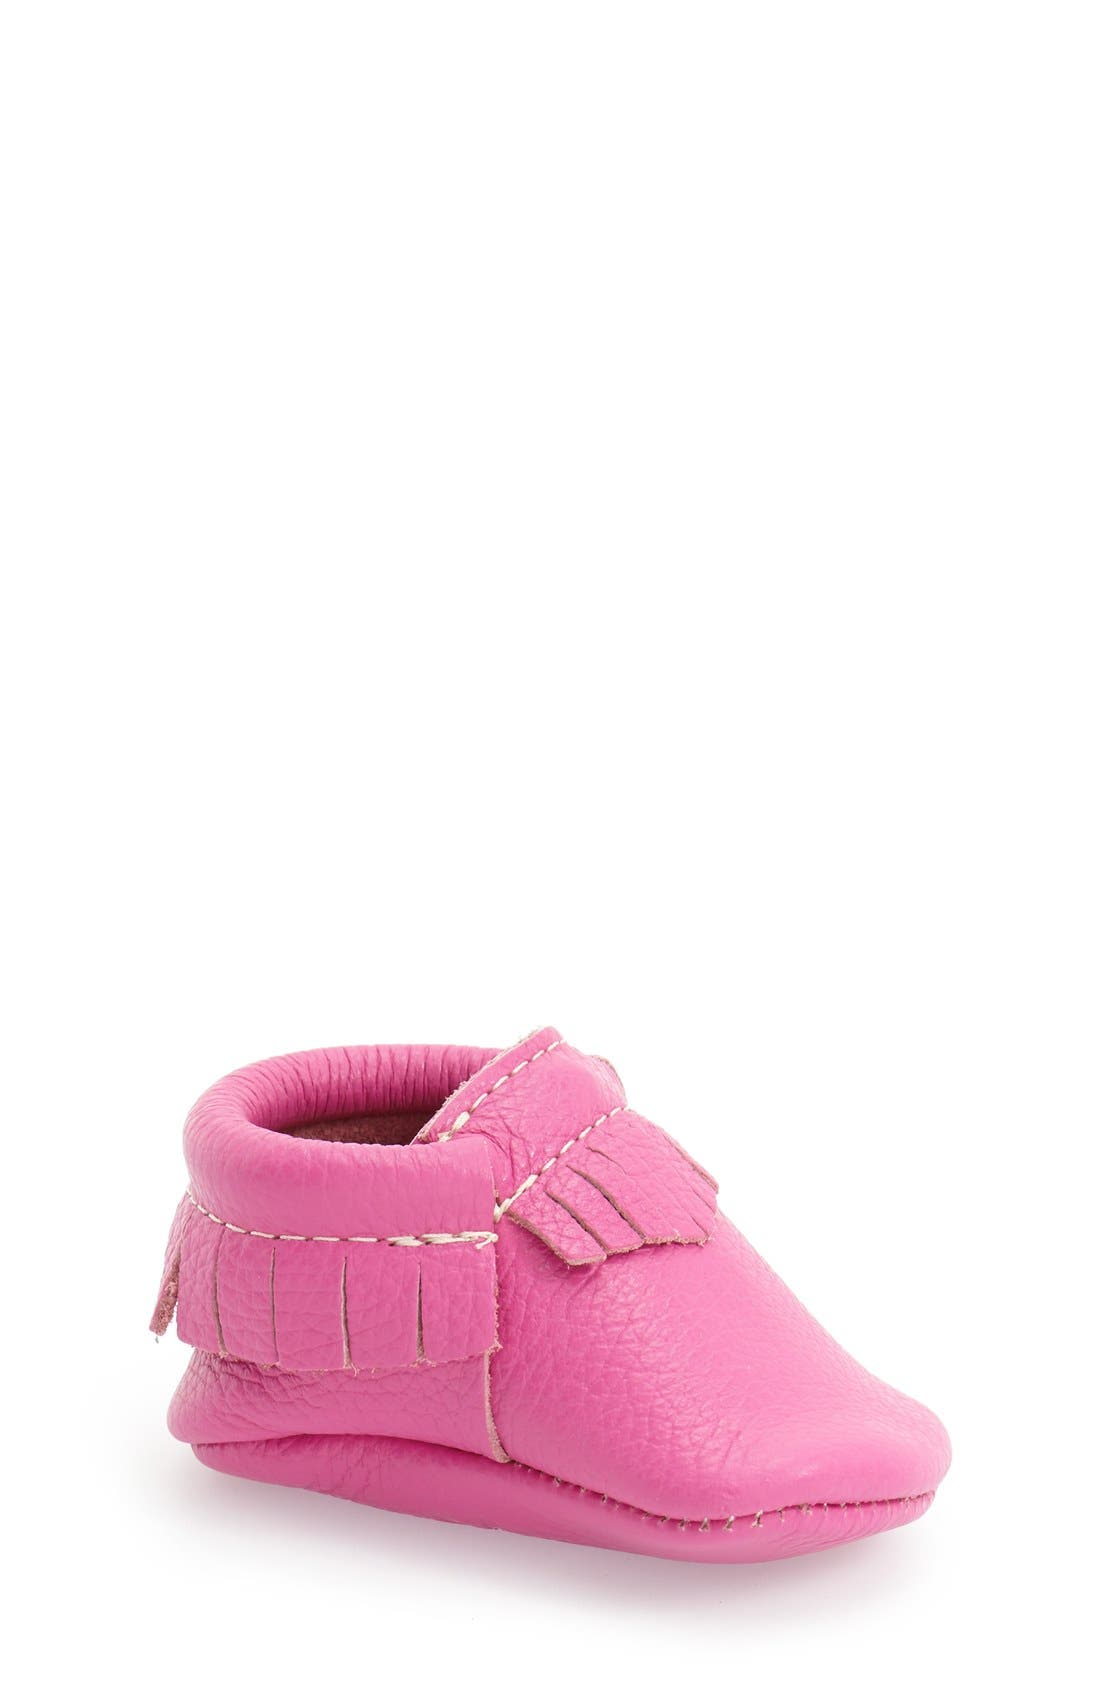 Leather Moccasin,                             Main thumbnail 1, color,                             MAGENTA